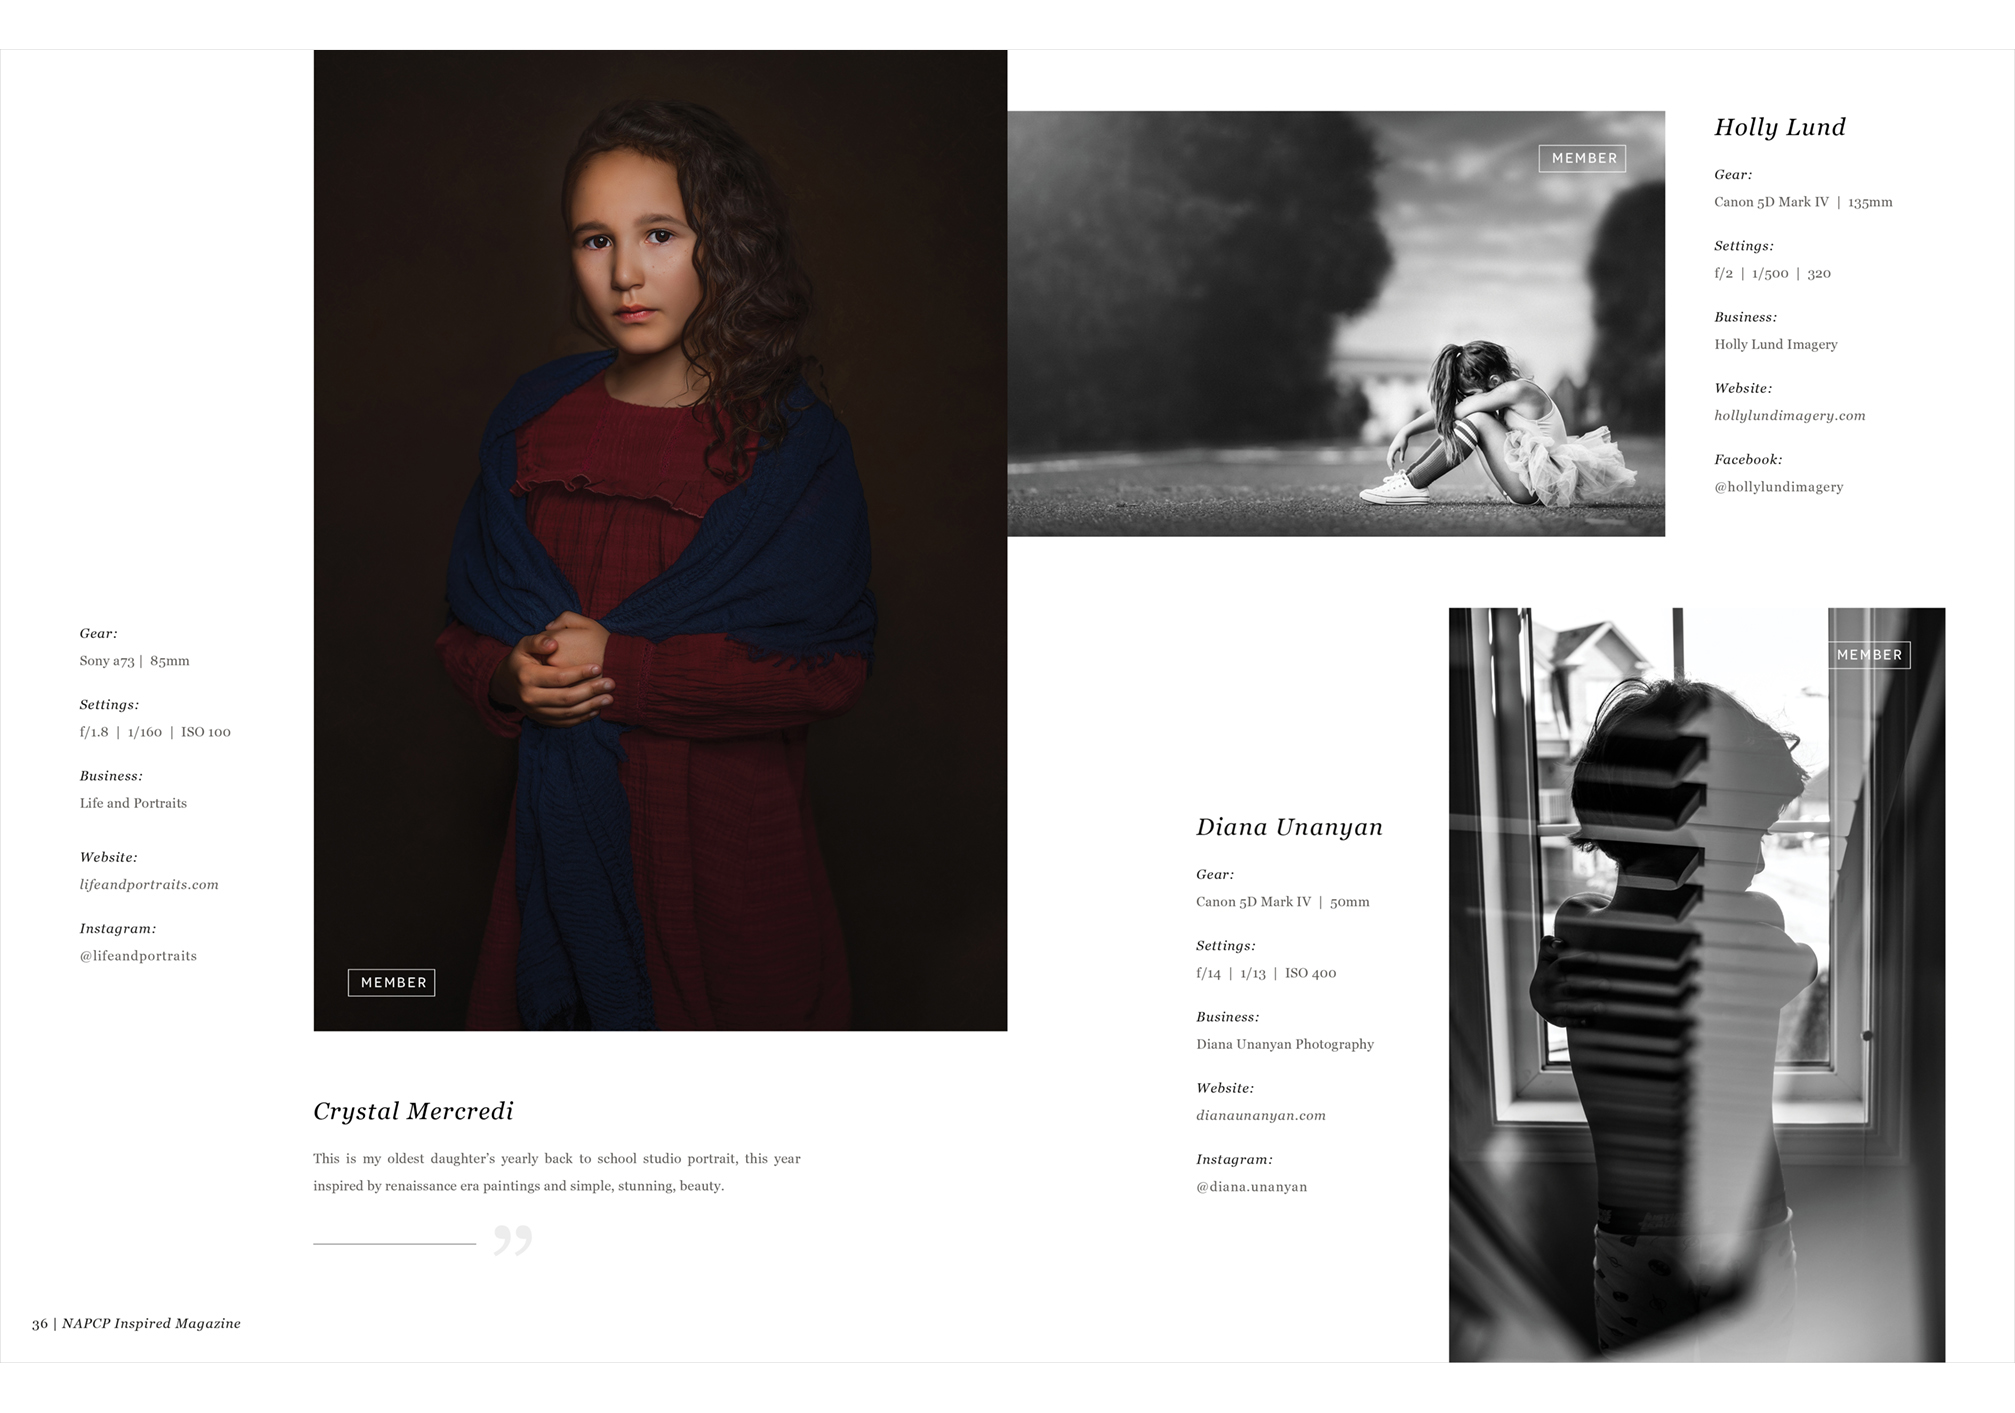 images by Crystal Mercredit, Holly Lund, and Diana Unanyan